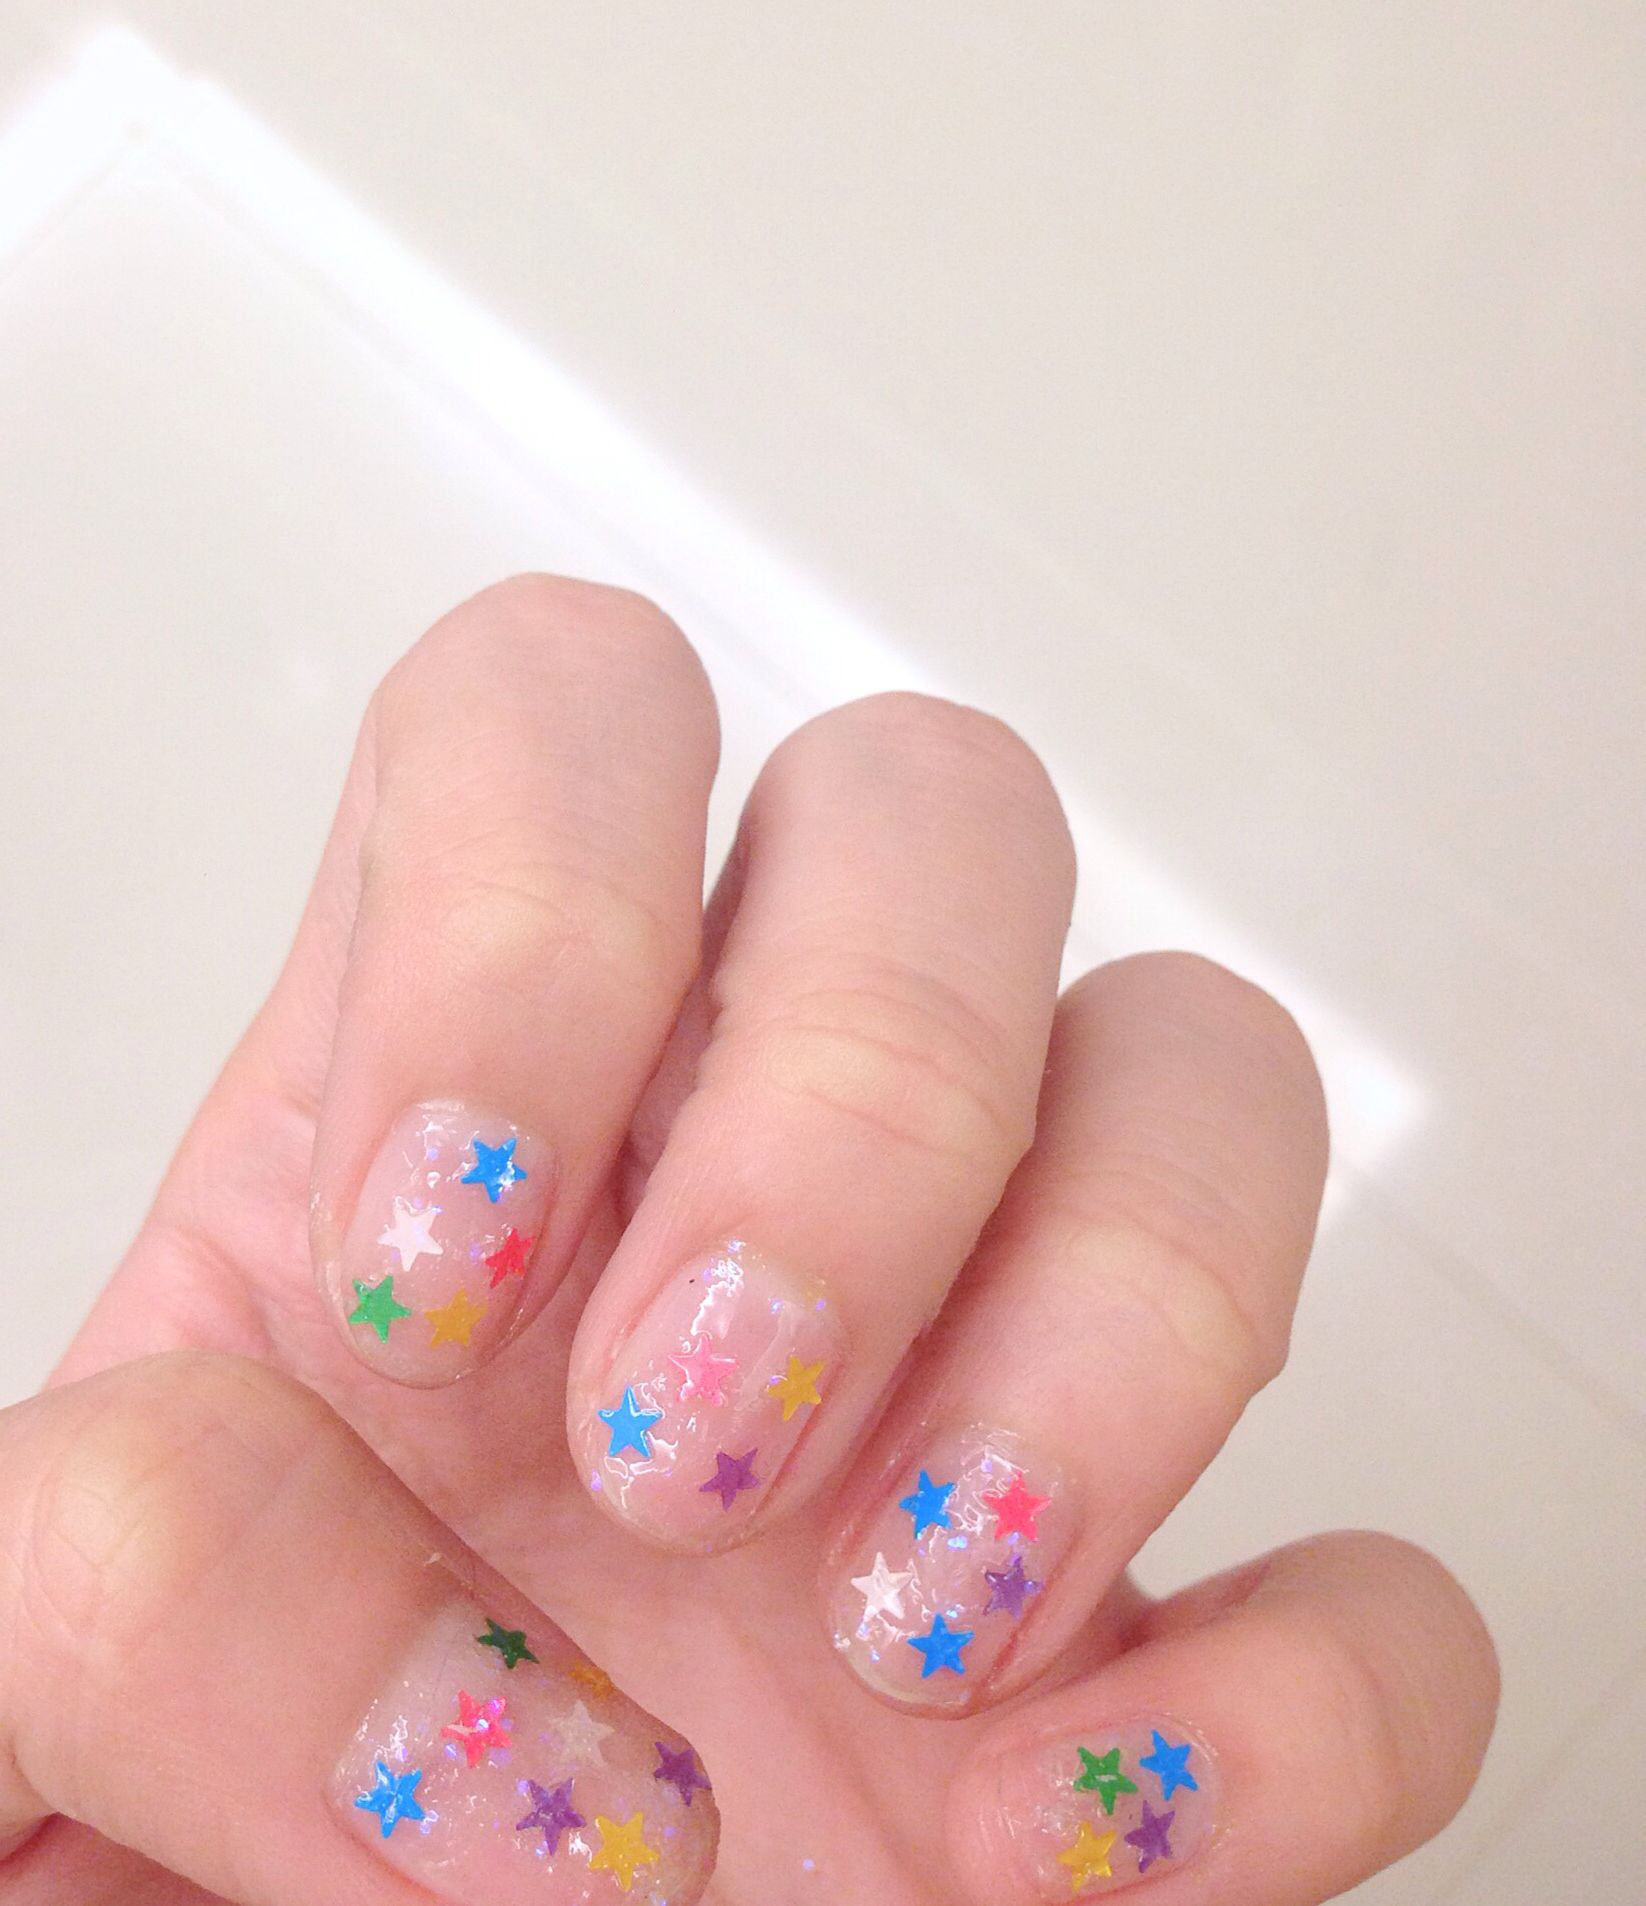 My Starry Nails Manicure Nails Gel Nails